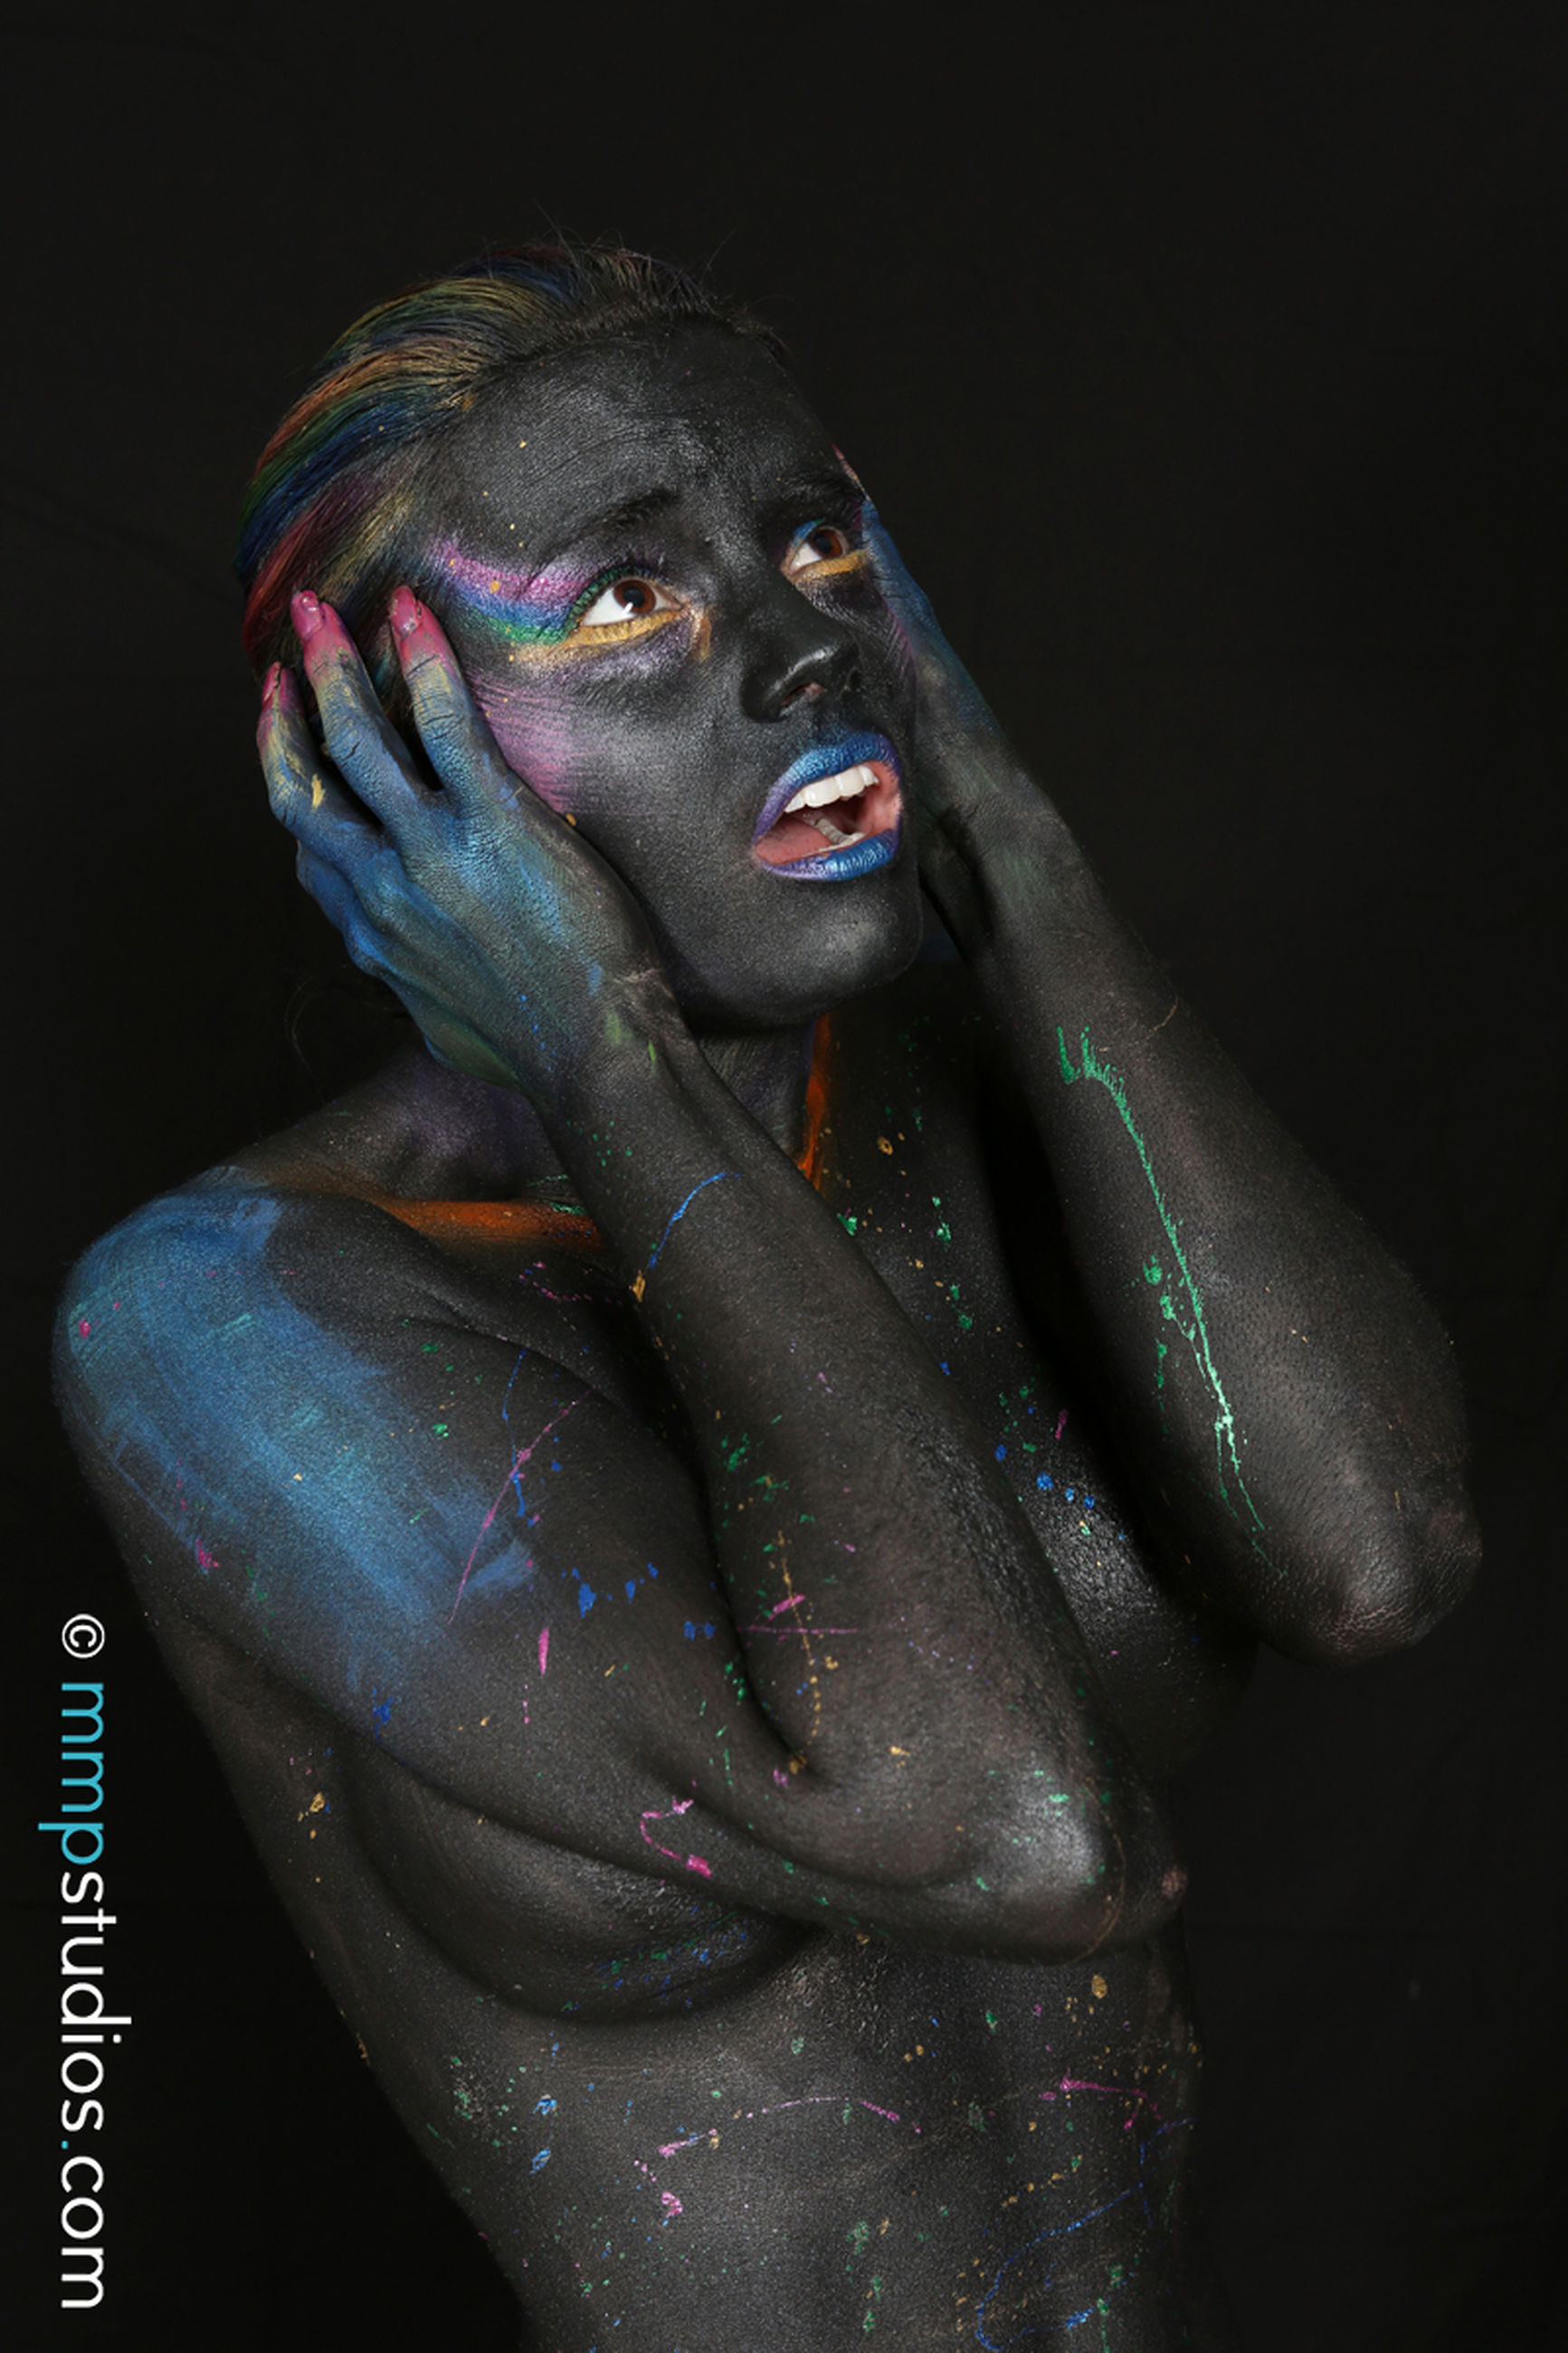 indoors, human representation, sculpture, studio shot, representation, statue, art and craft, black background, creativity, no people, male likeness, close-up, female likeness, arts culture and entertainment, religion, craft, paint, belief